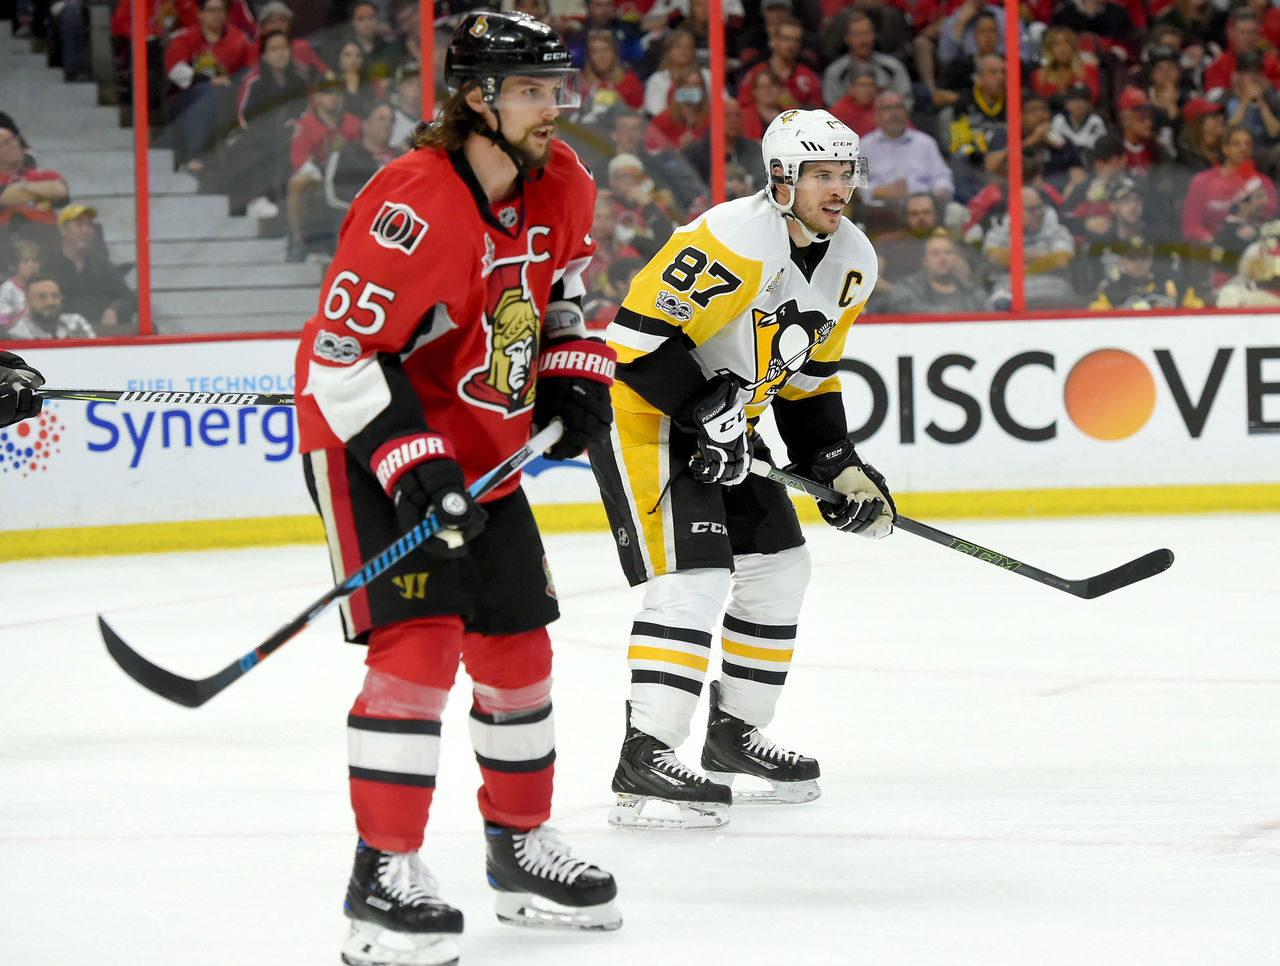 Cropped 2017 05 20t033451z 2092273029 nocid rtrmadp 3 nhl stanley cup playoffs pittsburgh penguins at ottawa senators